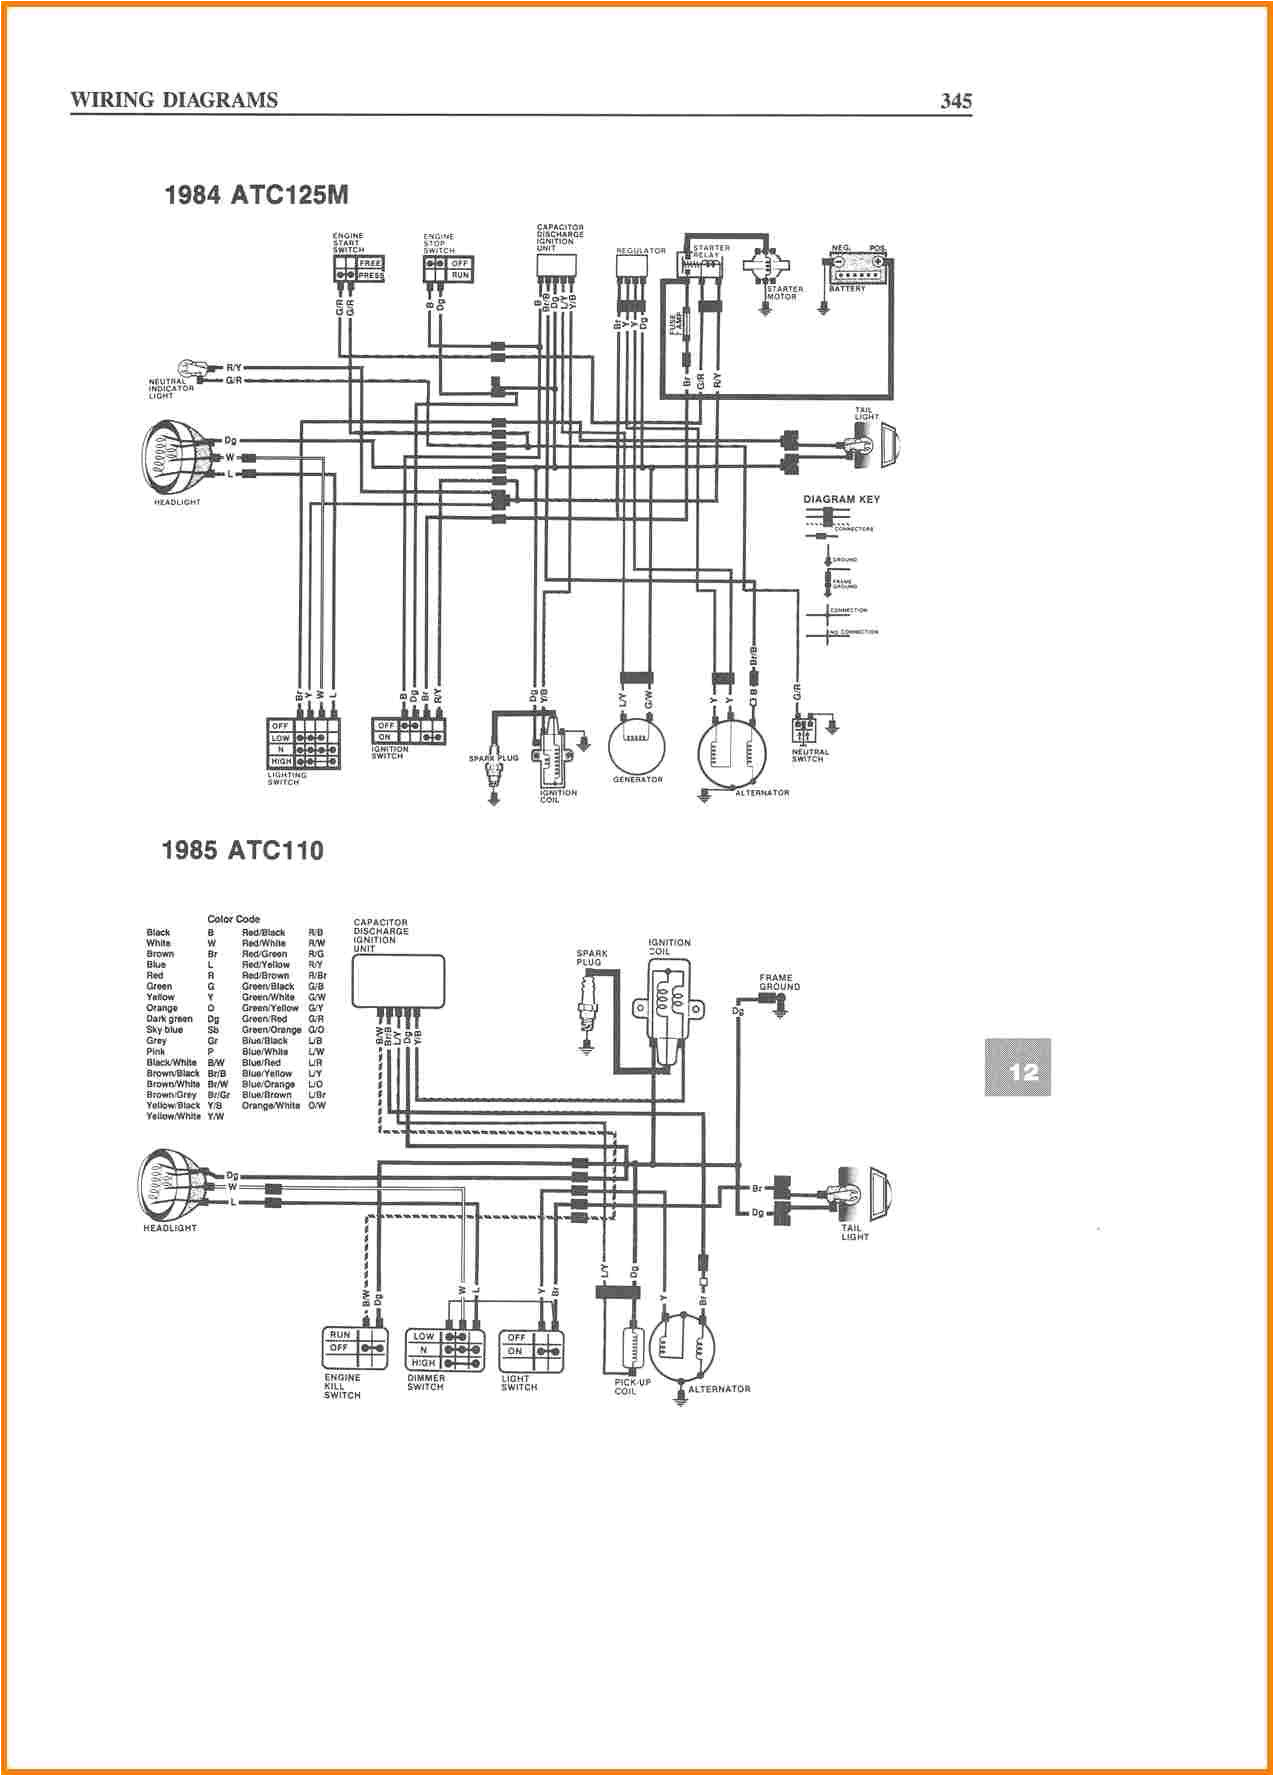 tao tao scooter wiring diagram wiring diagram expert 2015 tao tao 50cc engine diagram wiring diagram